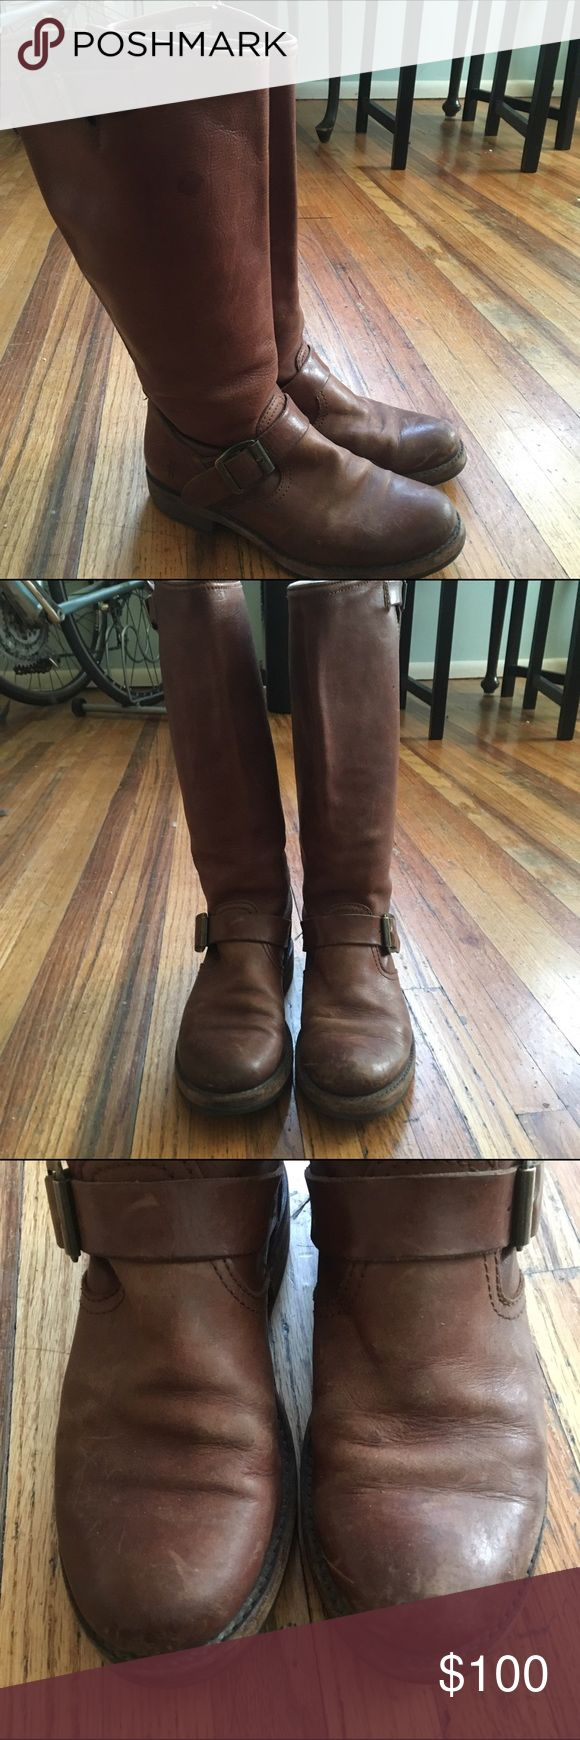 Frye Riding Boots Gorgeous Frye boots in reddish brown with some visible wear. The leather is scuffed in some places but the sole is good, and the leather would clean up with some polishing. They definitely have a vintage look to them, but should last forever with proper care. Frye Shoes